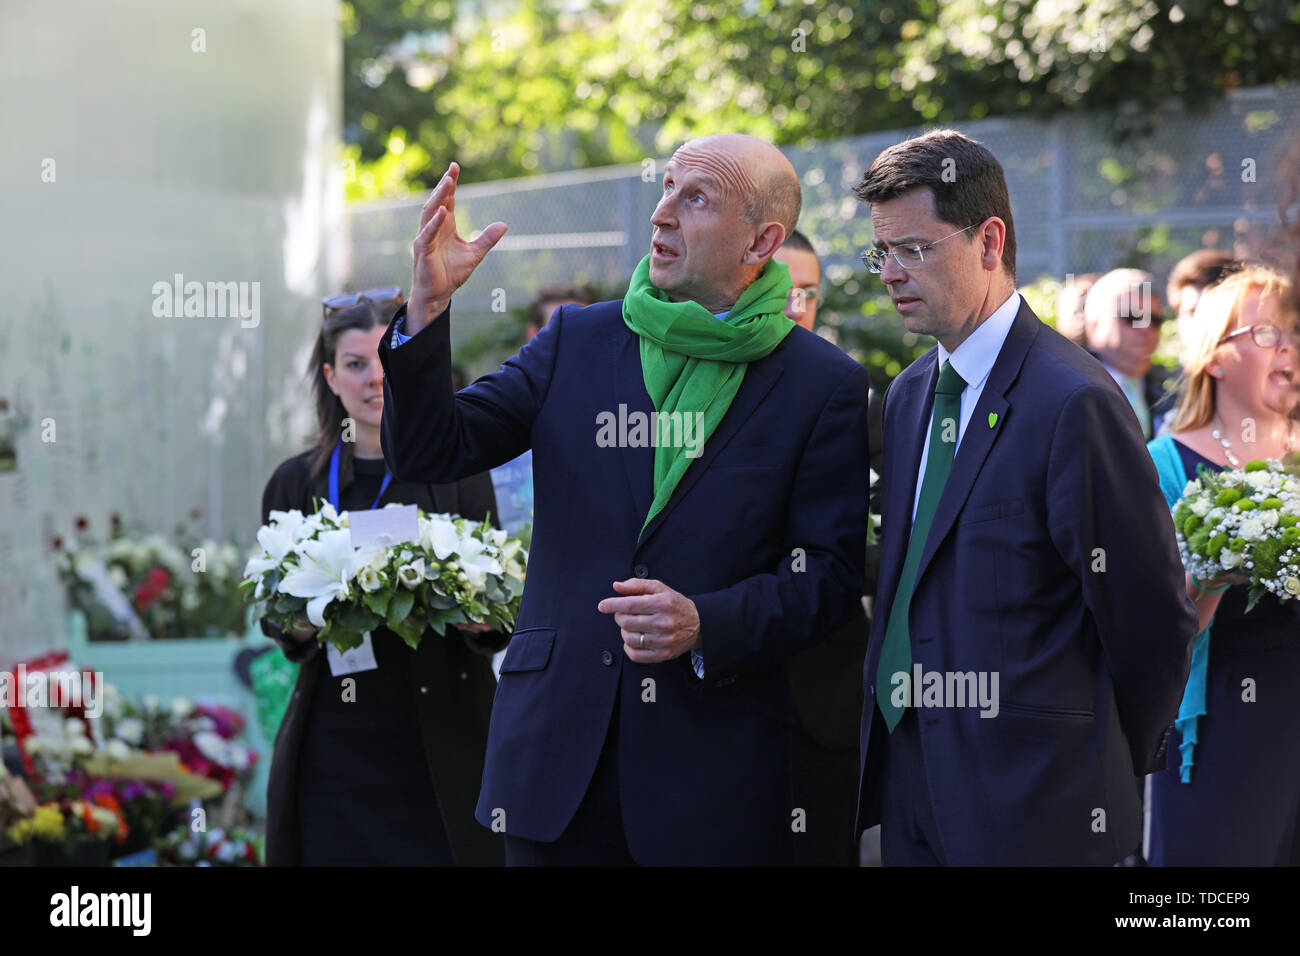 Shadow housing secretary John Healey outside Grenfell Tower, London, ahead of the wreath laying ceremony, to mark the two-year anniversary of the tower block fire in memory of the 72 people who lost their lives. - Stock Image